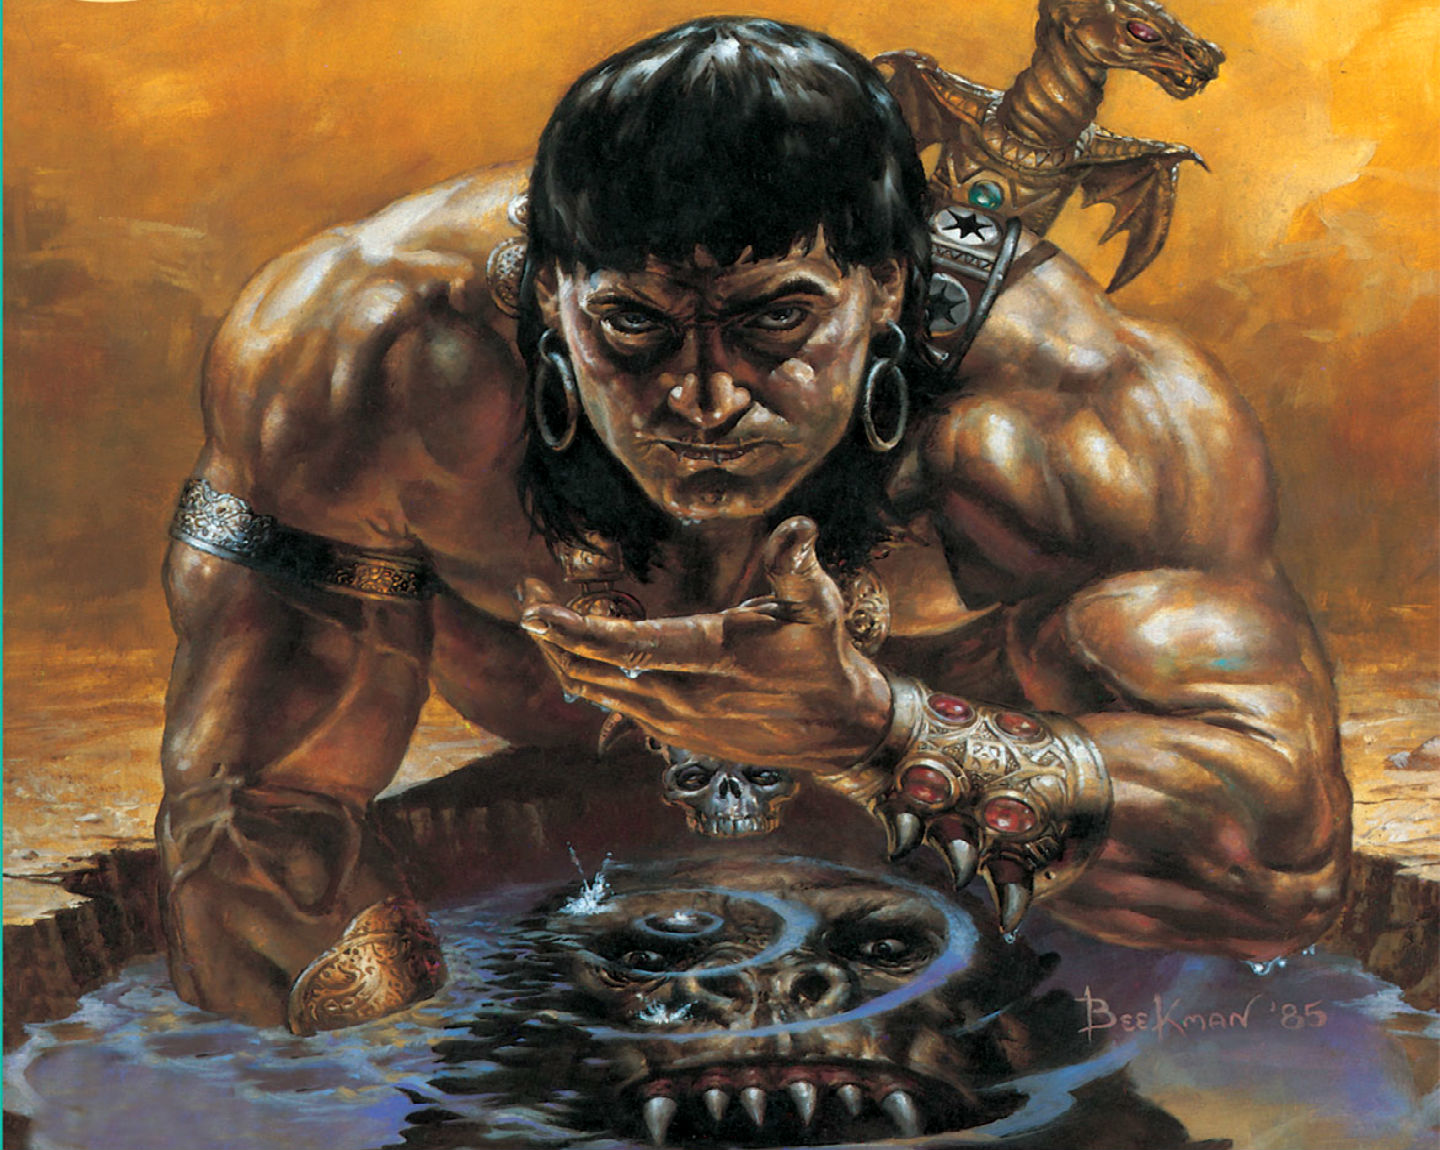 CONAN THE BARBARIAN l wallpaper background 1440x1150